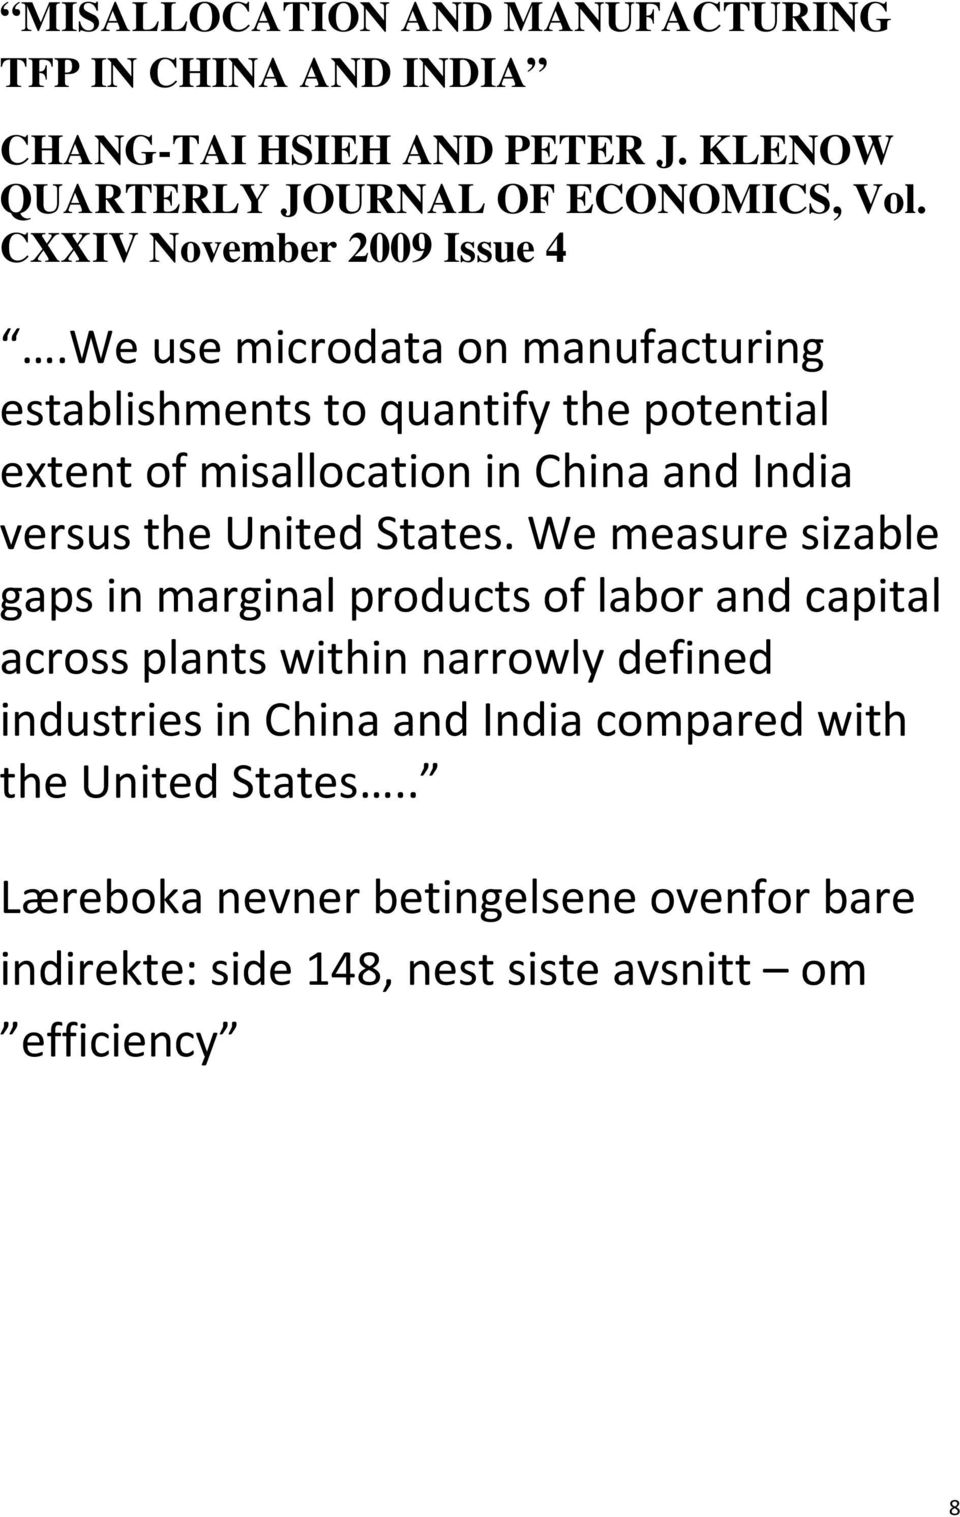 We use microdata on manufacturing establishments to quantify the potential extent of misallocation in China and India versus the United